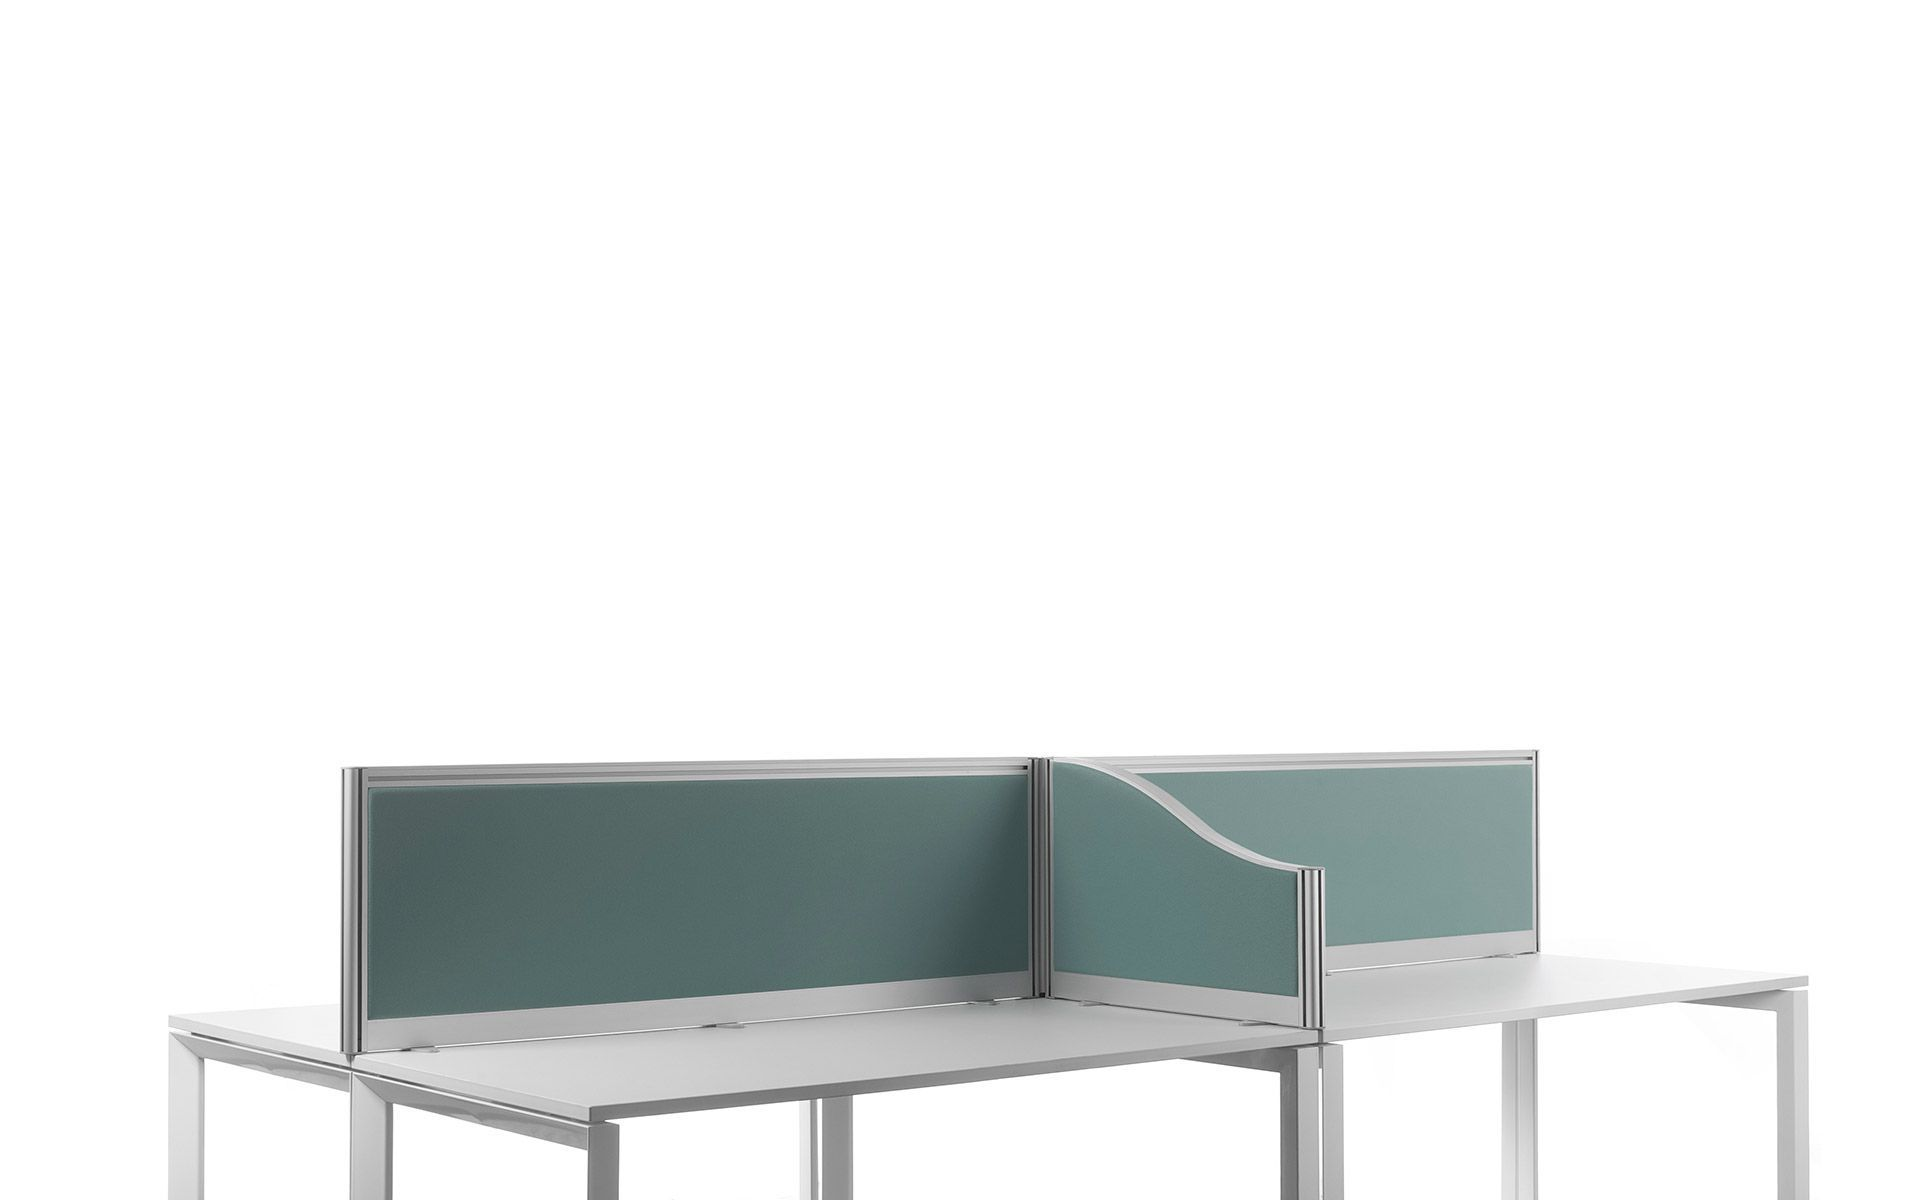 Countertop office divider glass polycarbonate acrylic